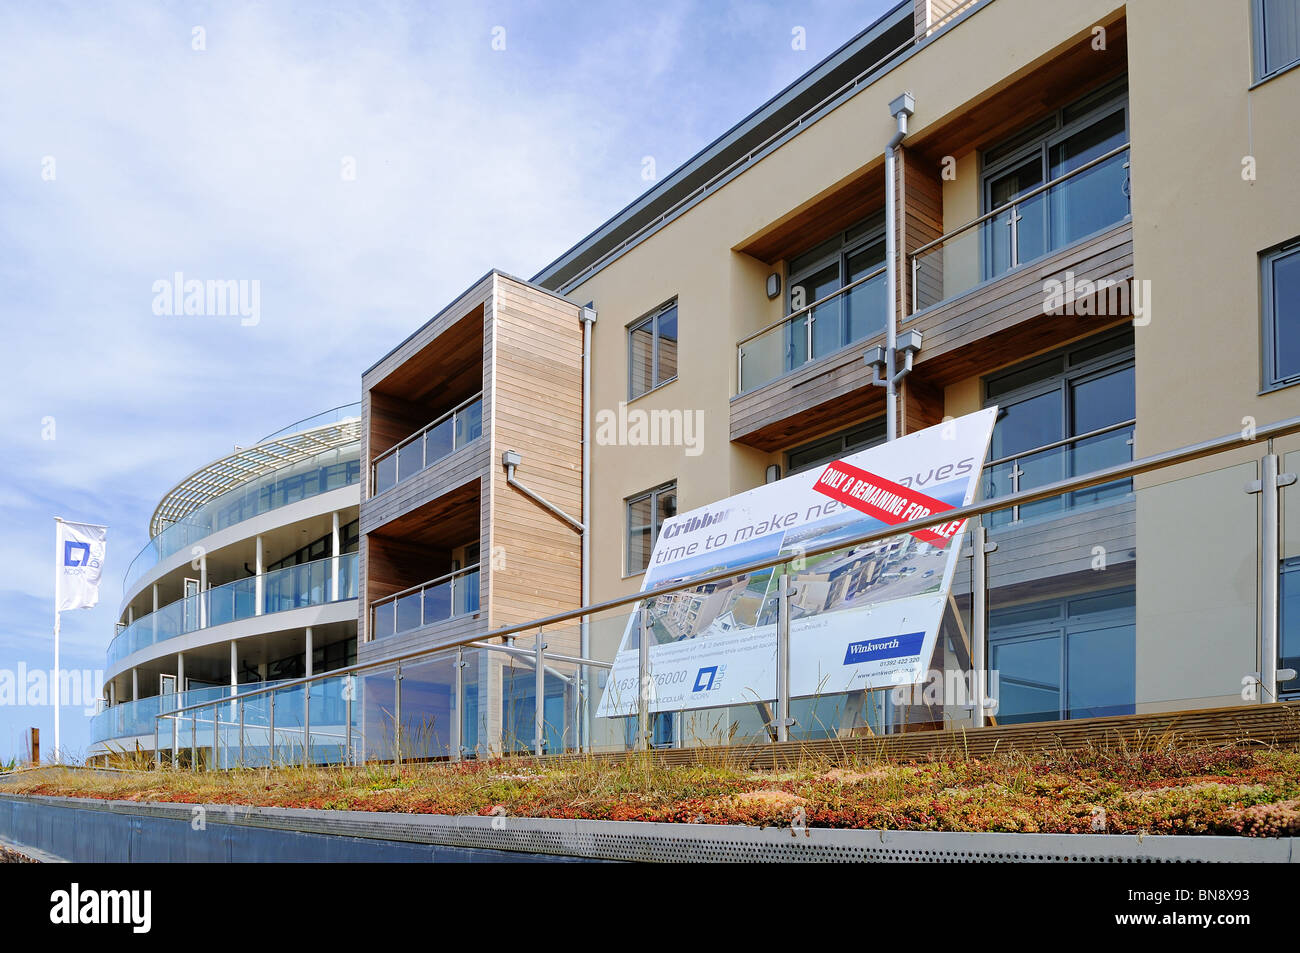 new upmarket apartments overlooking fistral beach, newquay, cornwall, uk - Stock Image